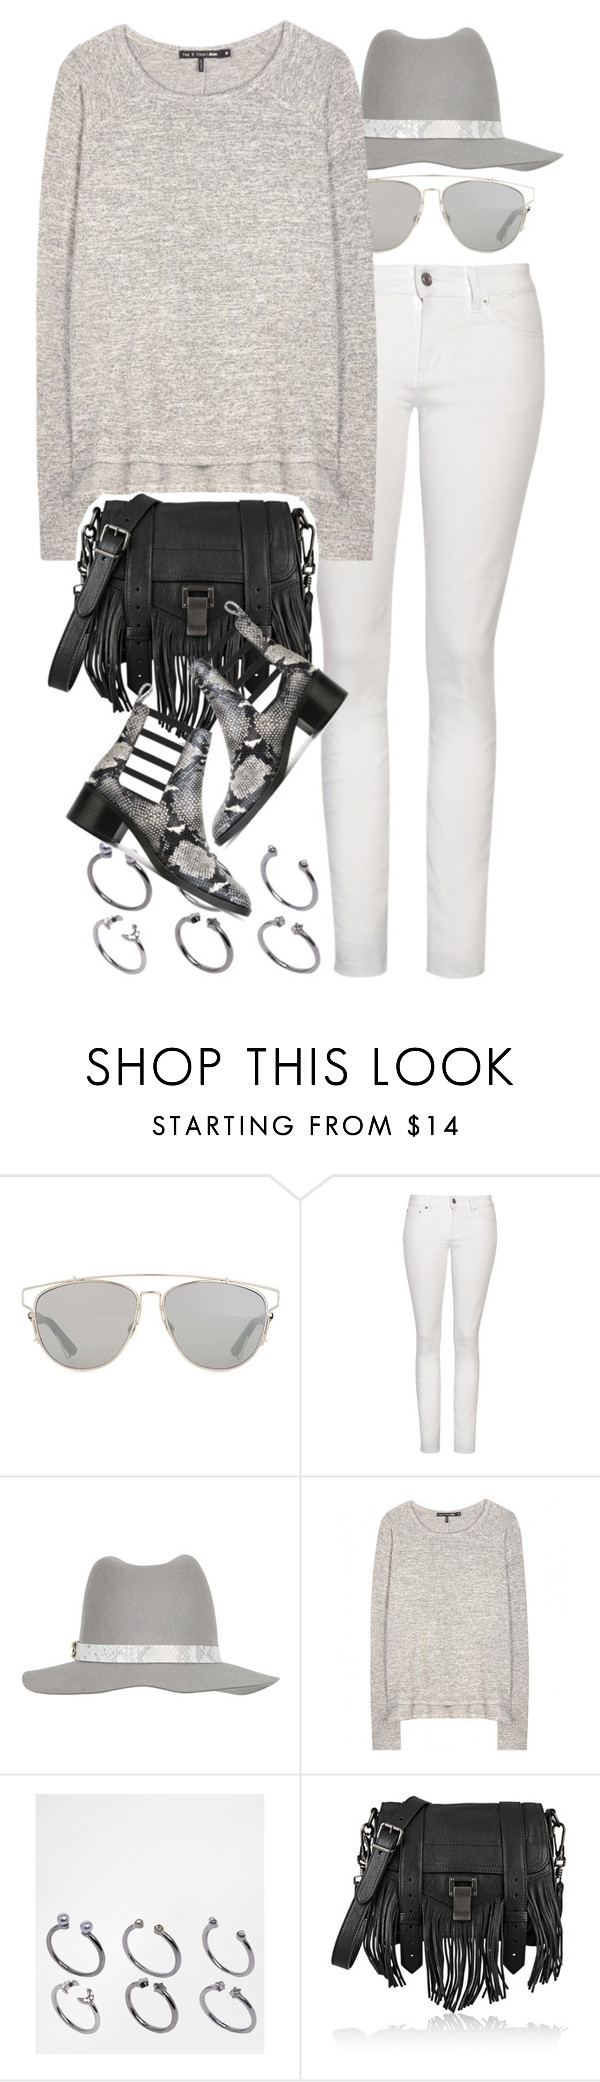 """""""Untitled #8613"""" by nikka-phillips ❤ liked on Polyvore featuring Christian Dior, Yves Saint Laurent, rag & bone, ASOS, Proenza Schouler and Each X Other"""